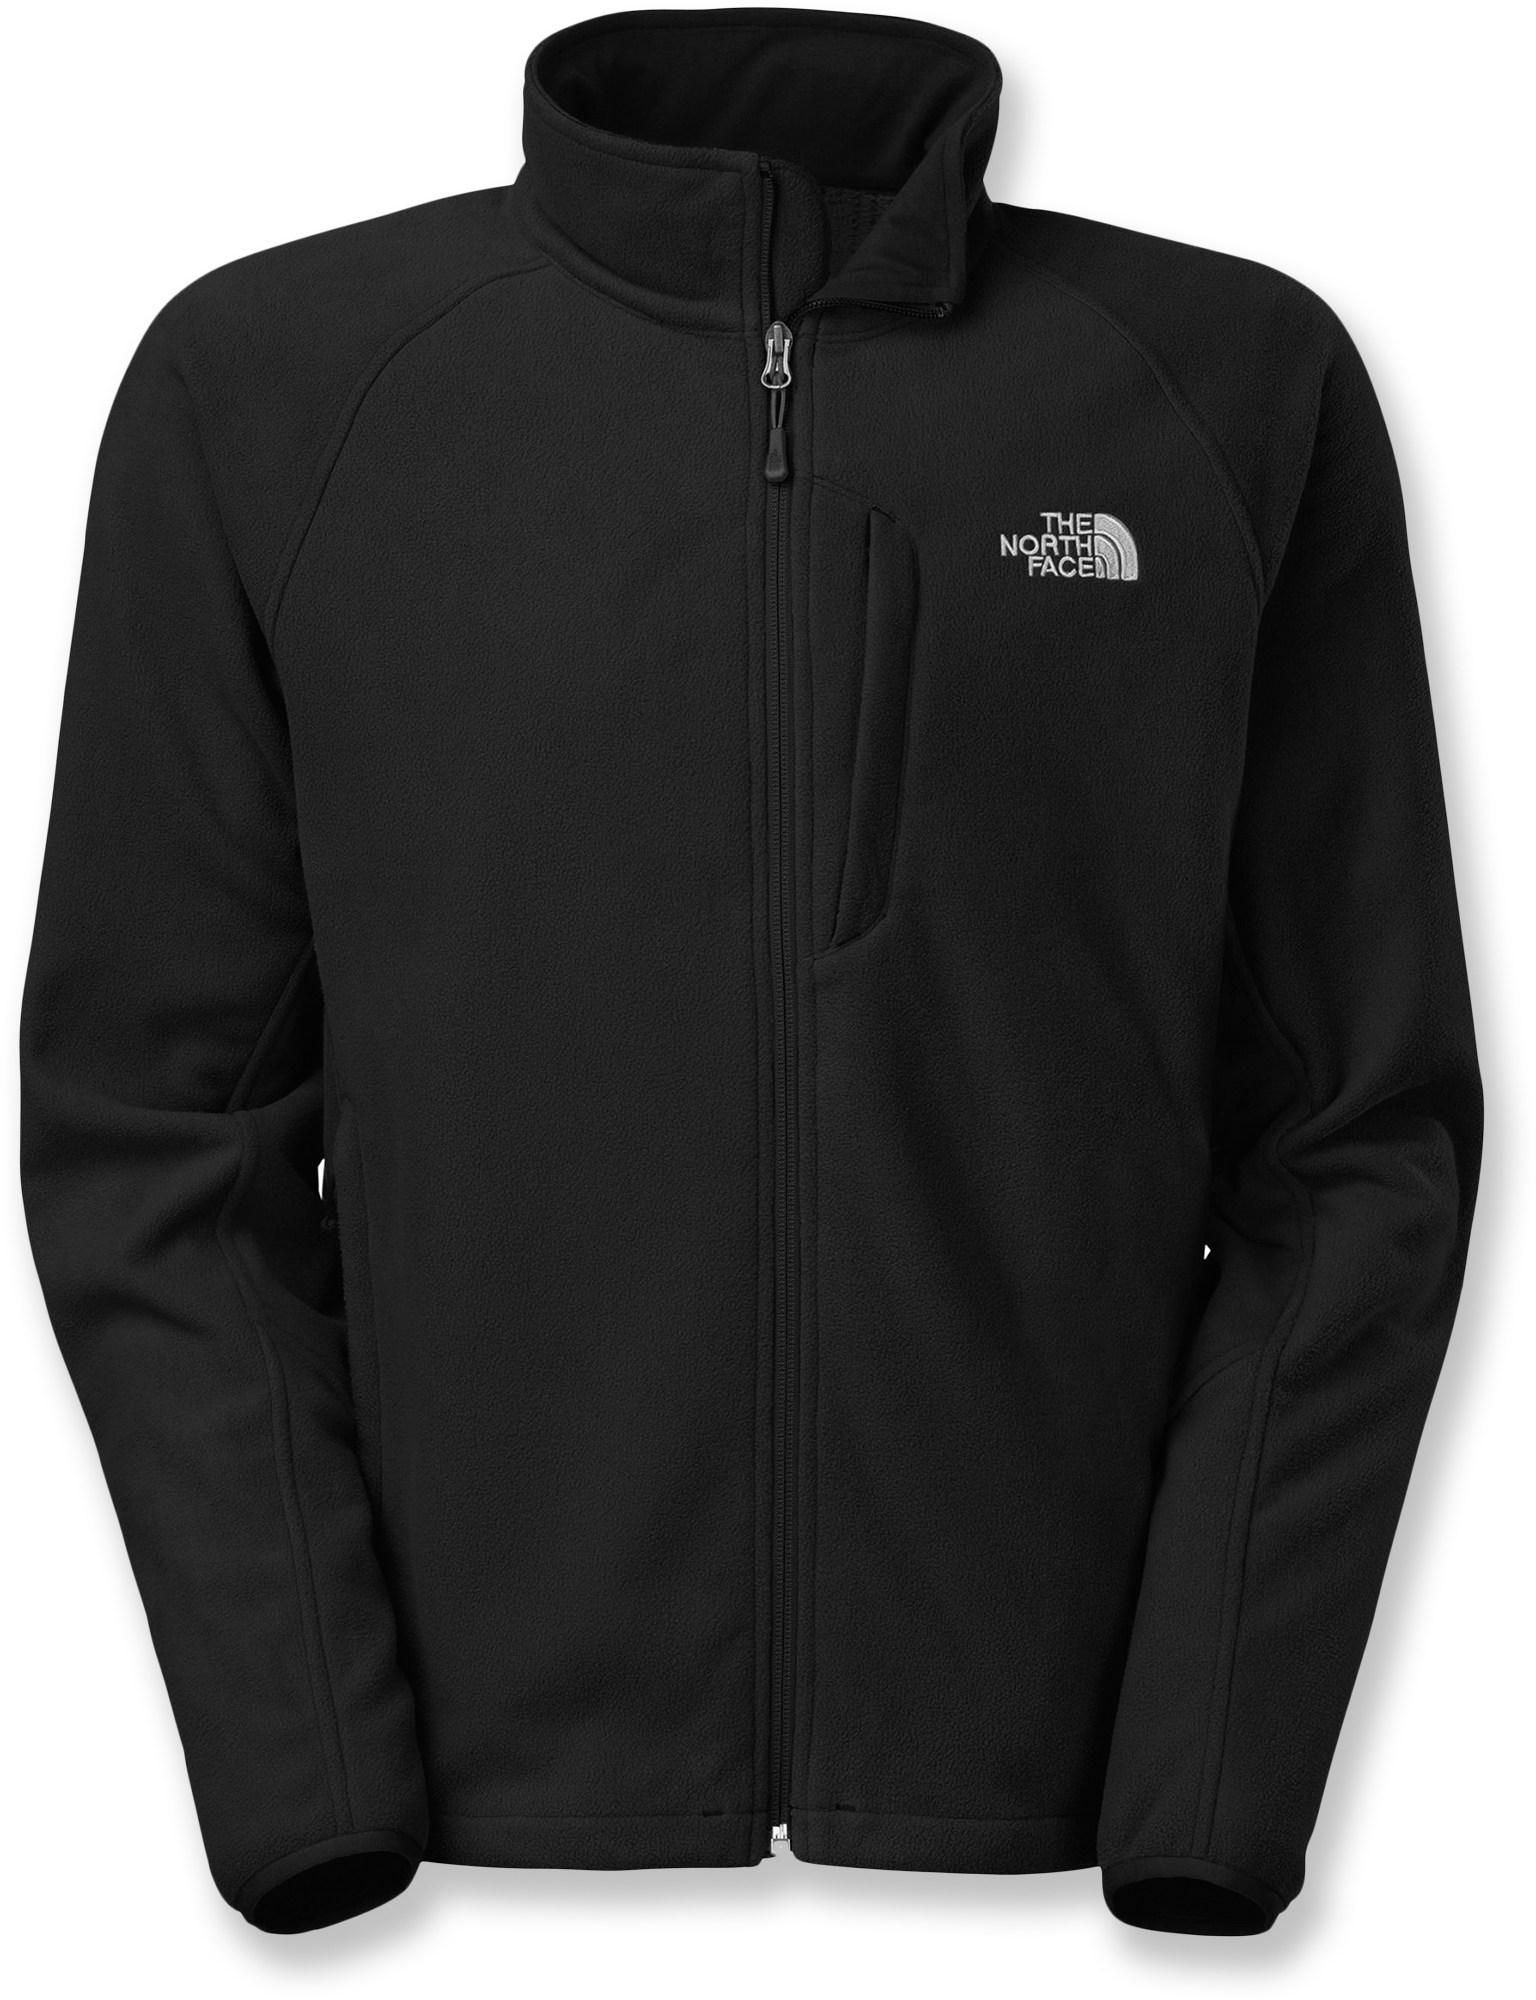 89c64af28 The North Face WindWall 2 Fleece Jacket - Men's | REI Co-op | Jeans ...